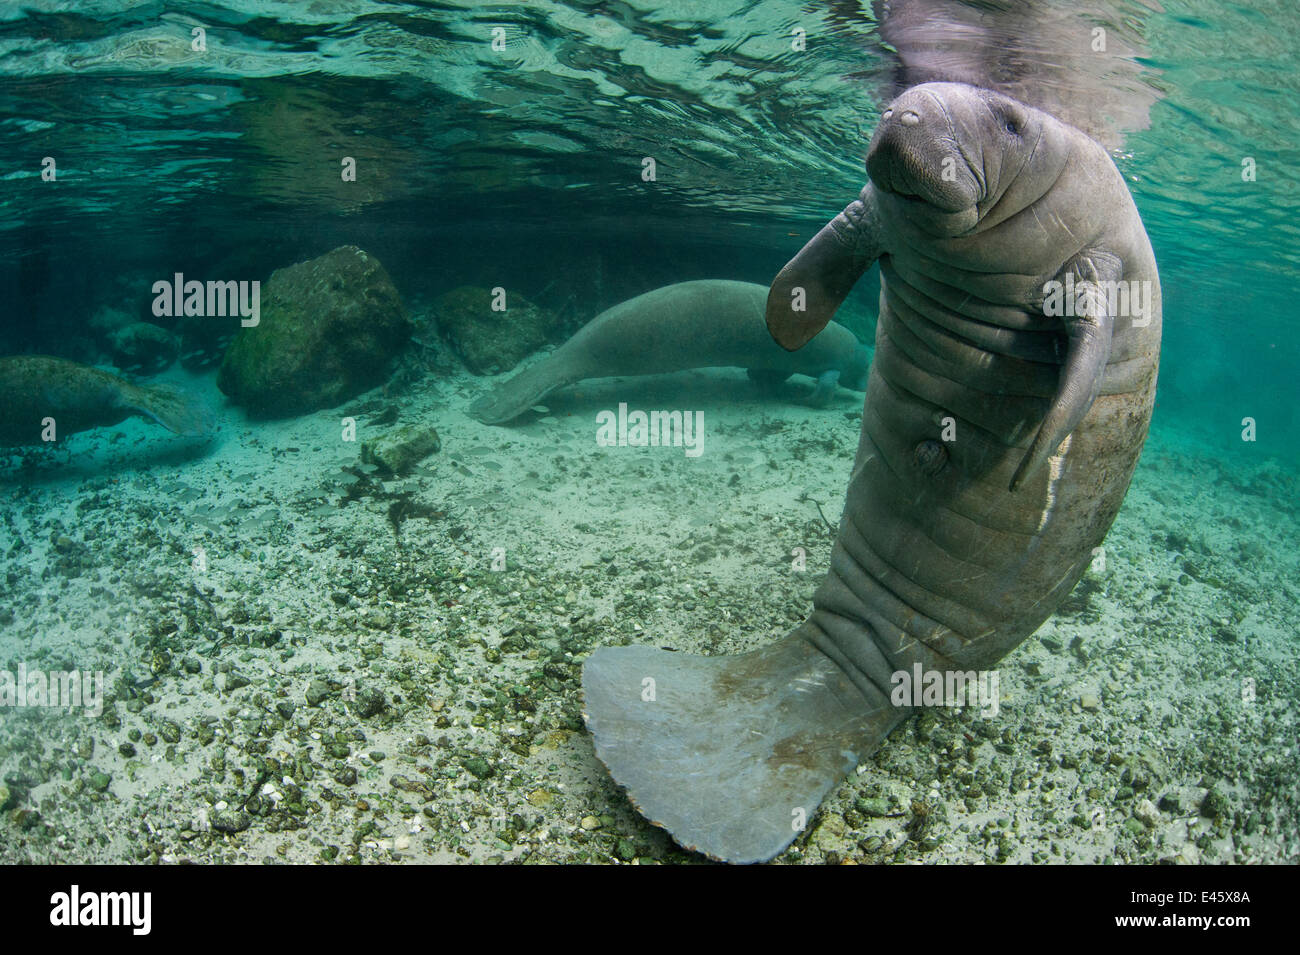 A Florida manatee (Trichechus manatus latirostrus) in upright posture with tail on river bed, outside Three Sisters - Stock Image